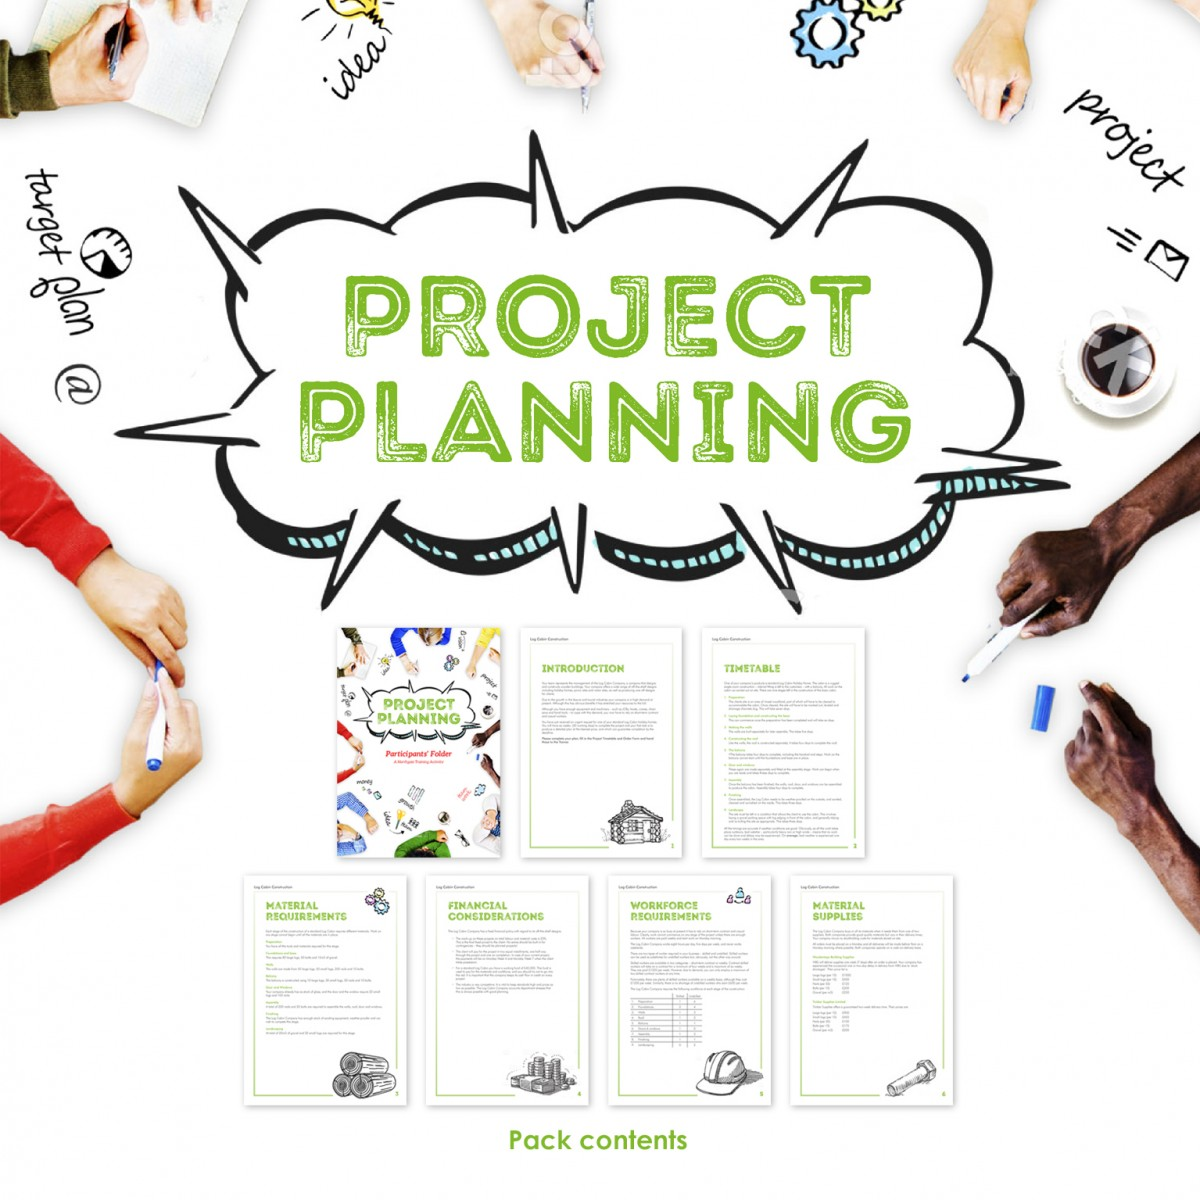 Project Planning | Planning Training Activity